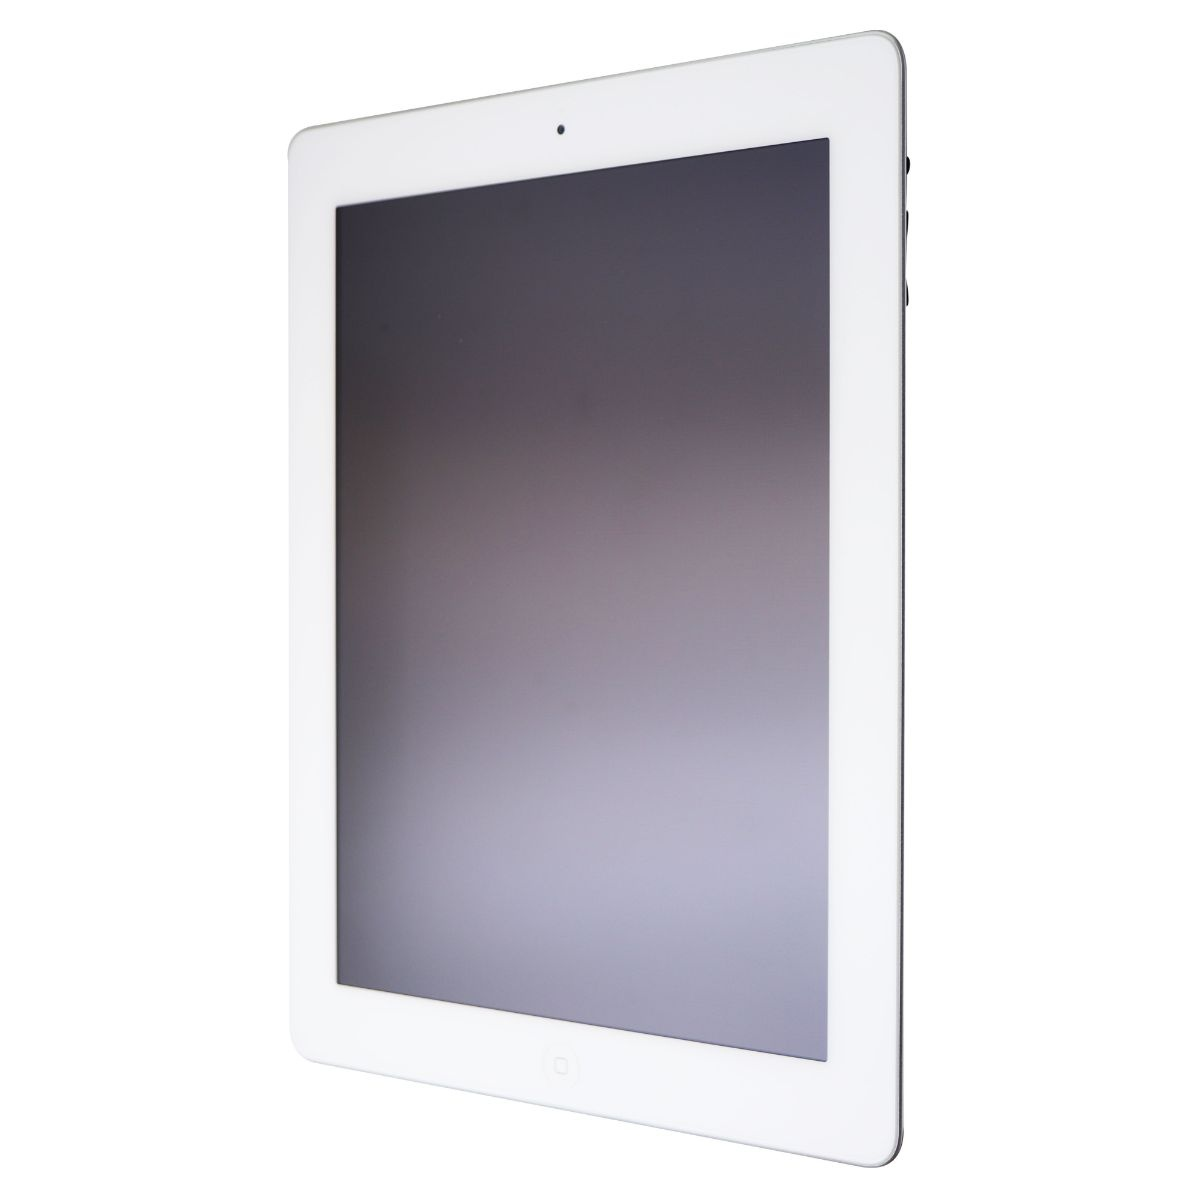 Apple iPad 9.7 (4th Gen) Tablet A1458 (MD513LL/A) Wi-Fi Only - 16GB / White